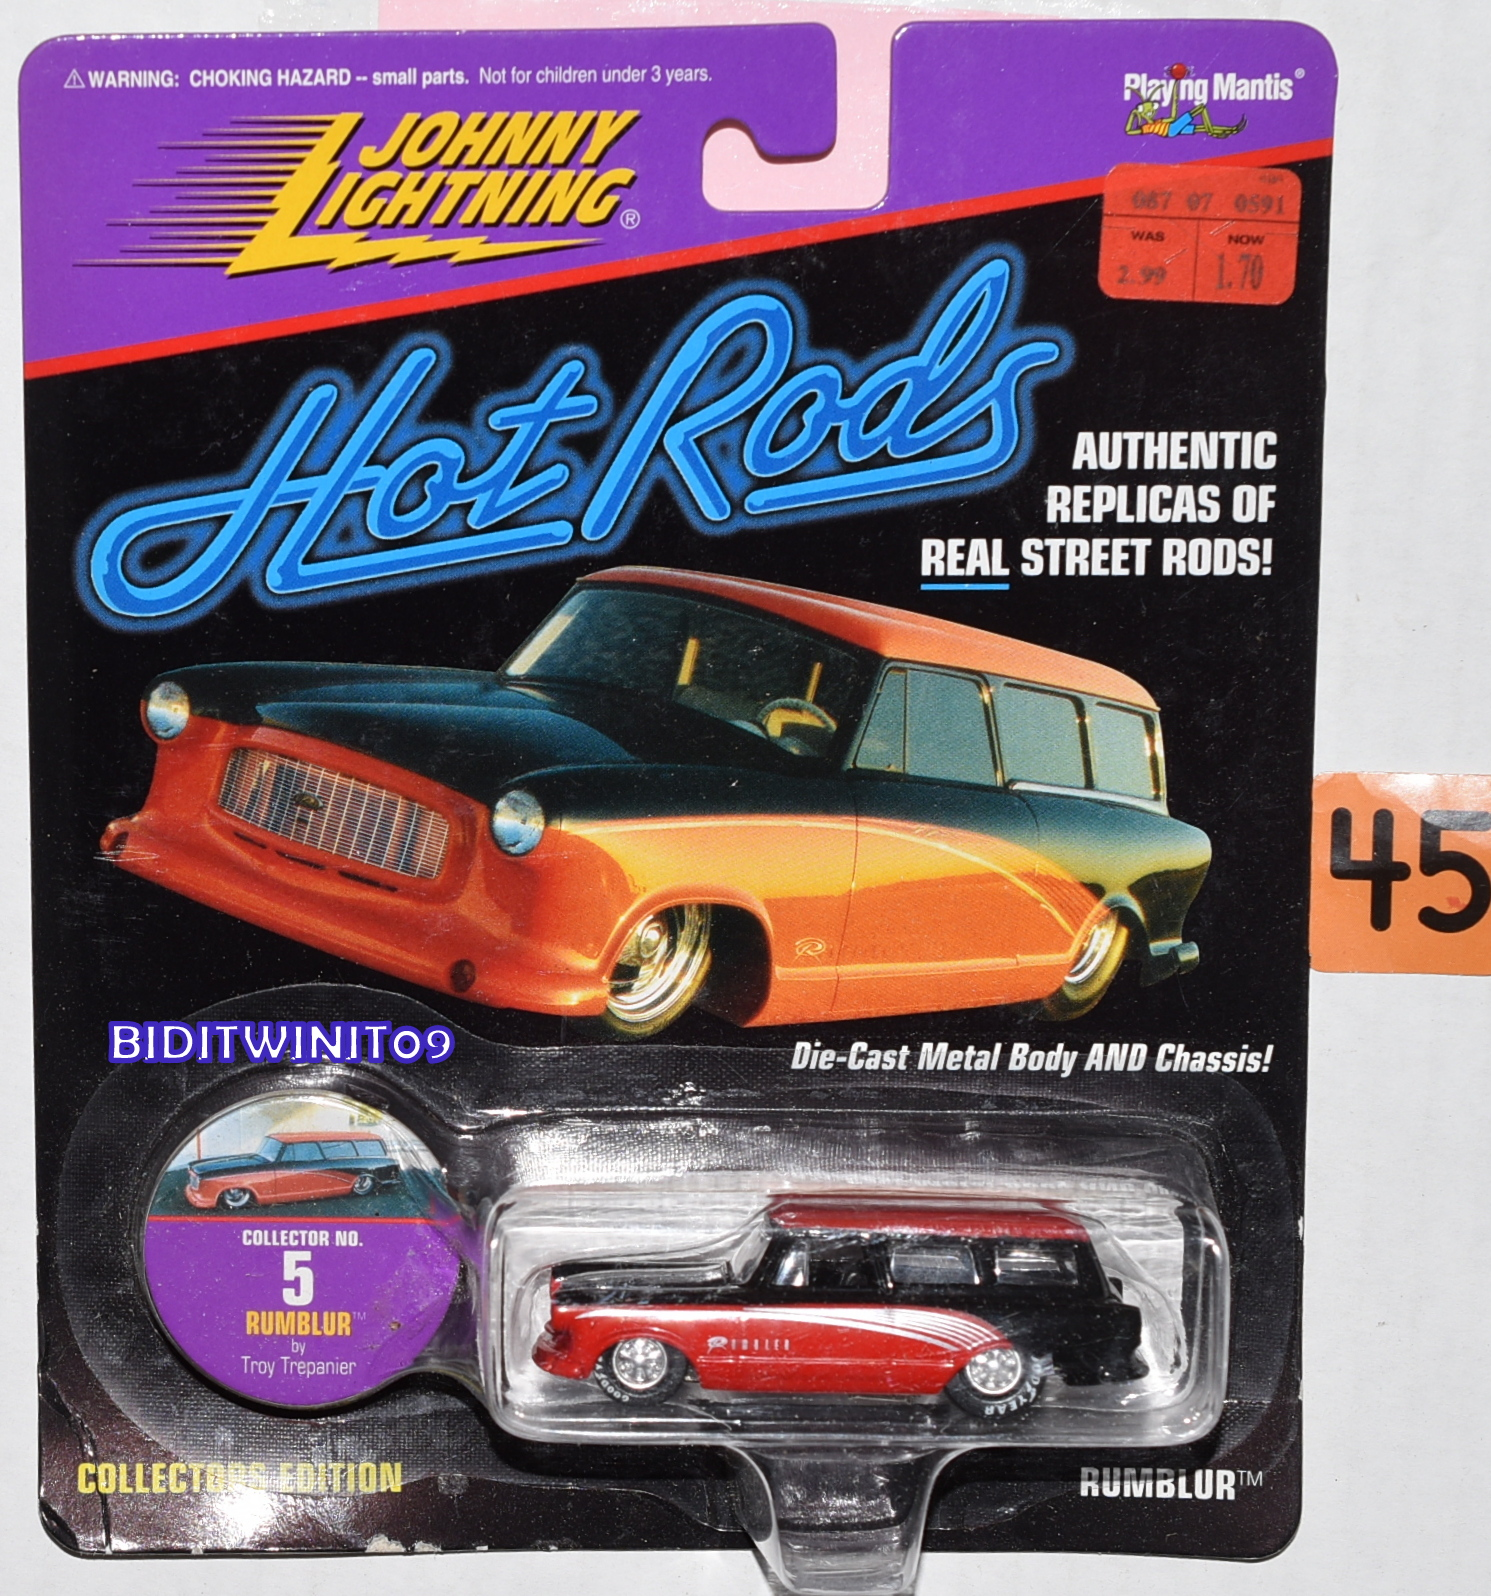 JOHNNY LIGHTNING HOT RODS RUMBLUR BY TROY TREPANIER #5 RED E+